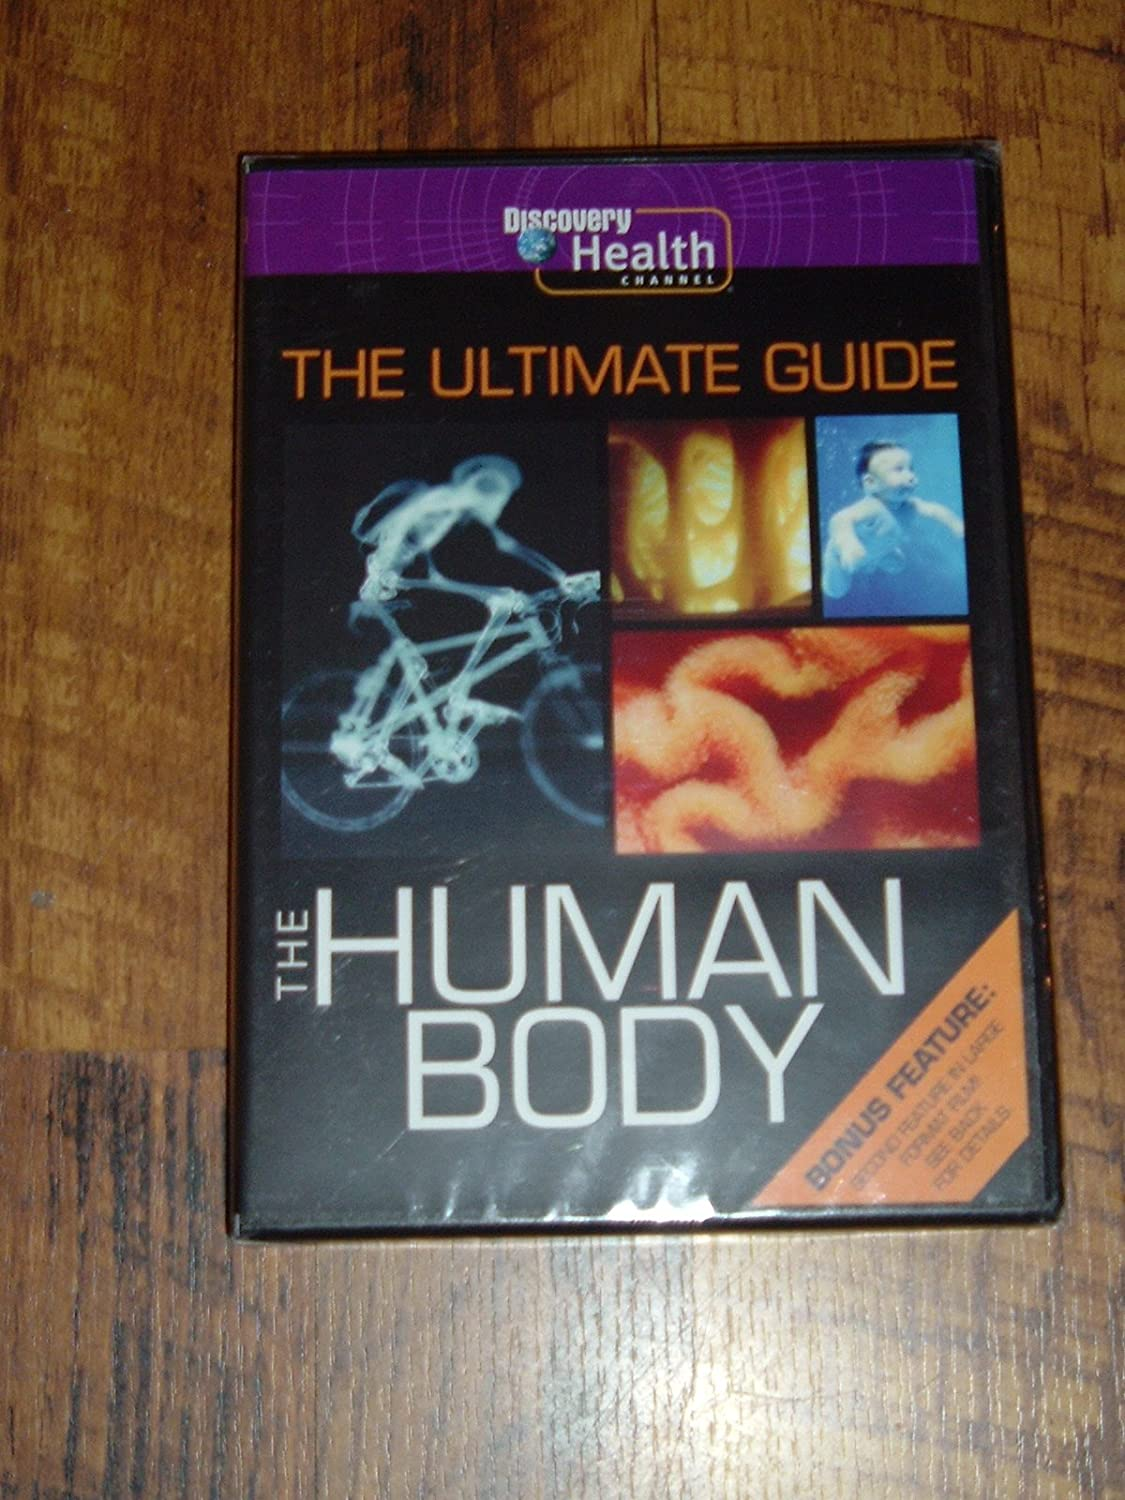 The ultimate guide body – miles kelly.